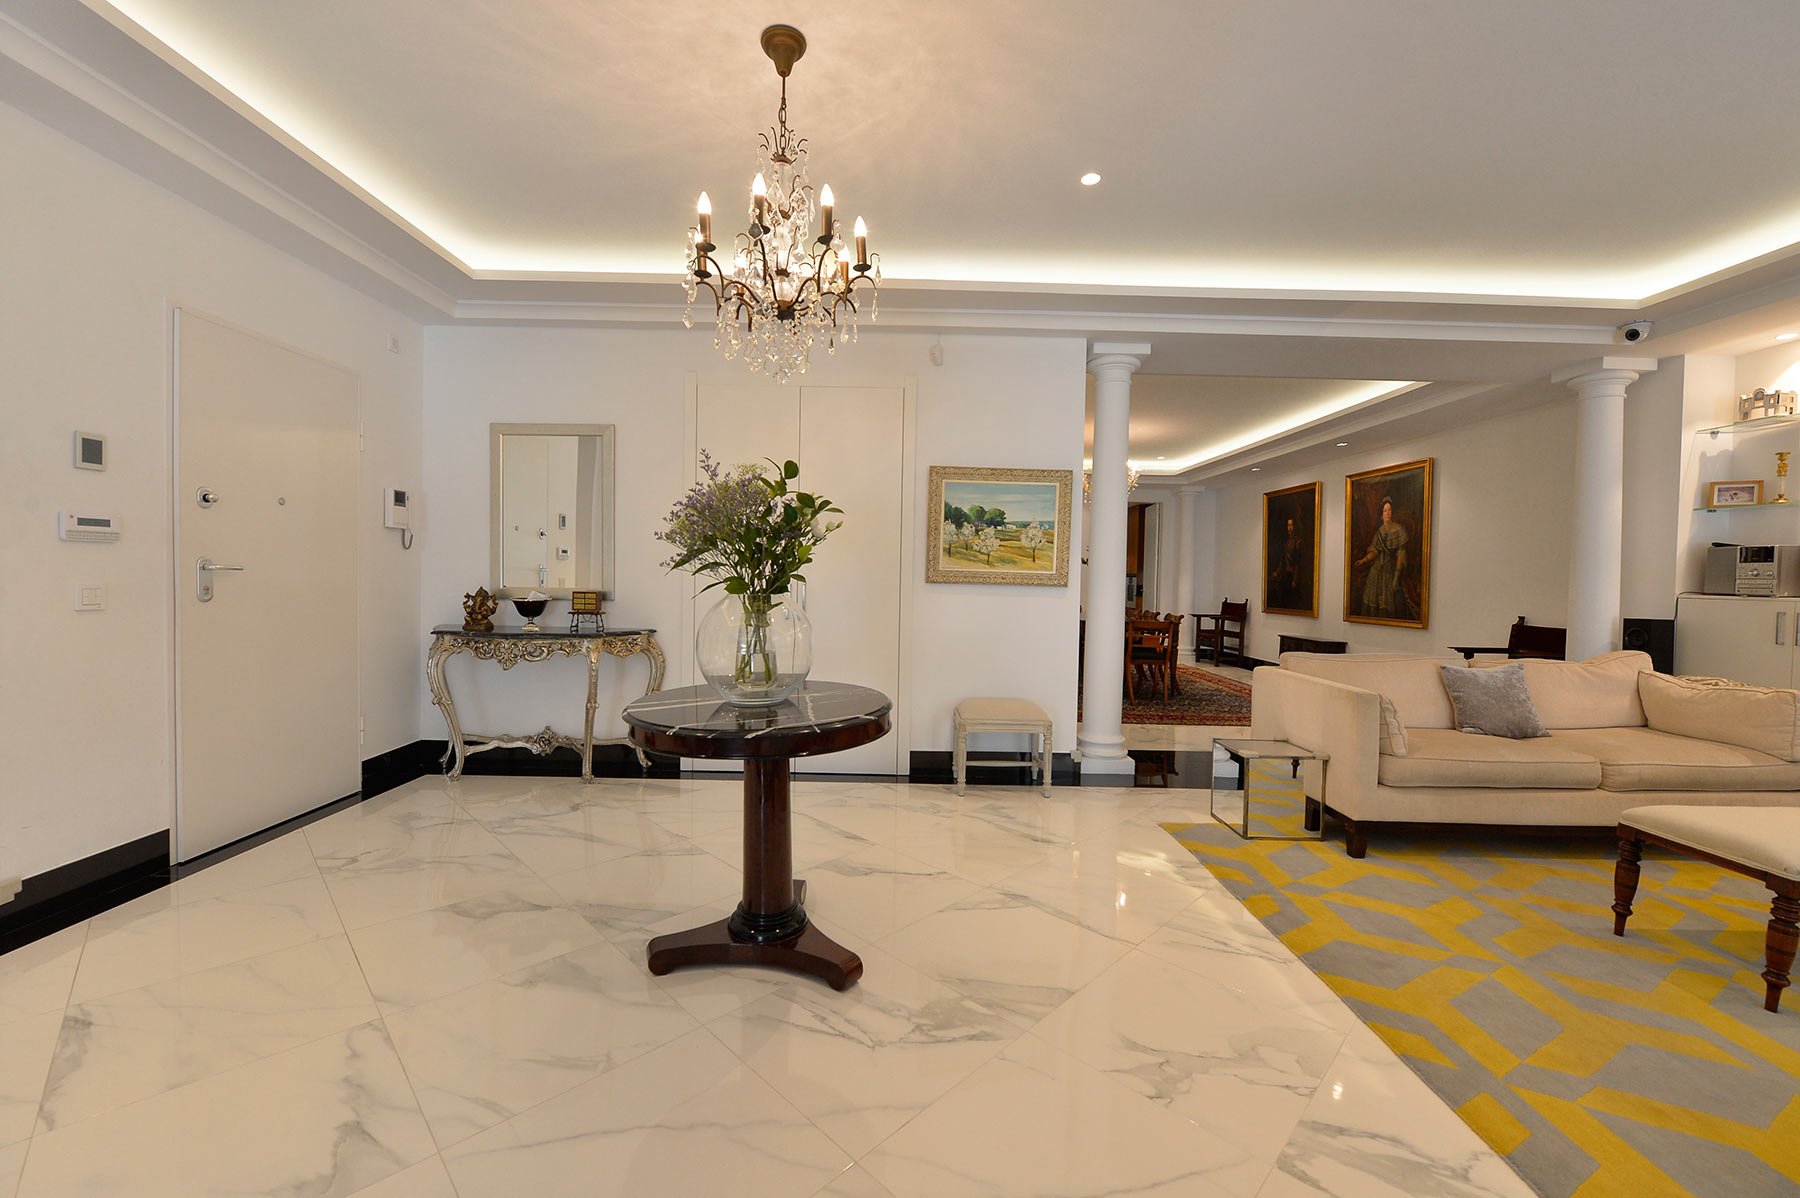 Single Family Home for Sale at Espectacular piso de 500 metros Other Spain, Other Areas In Spain, Spain